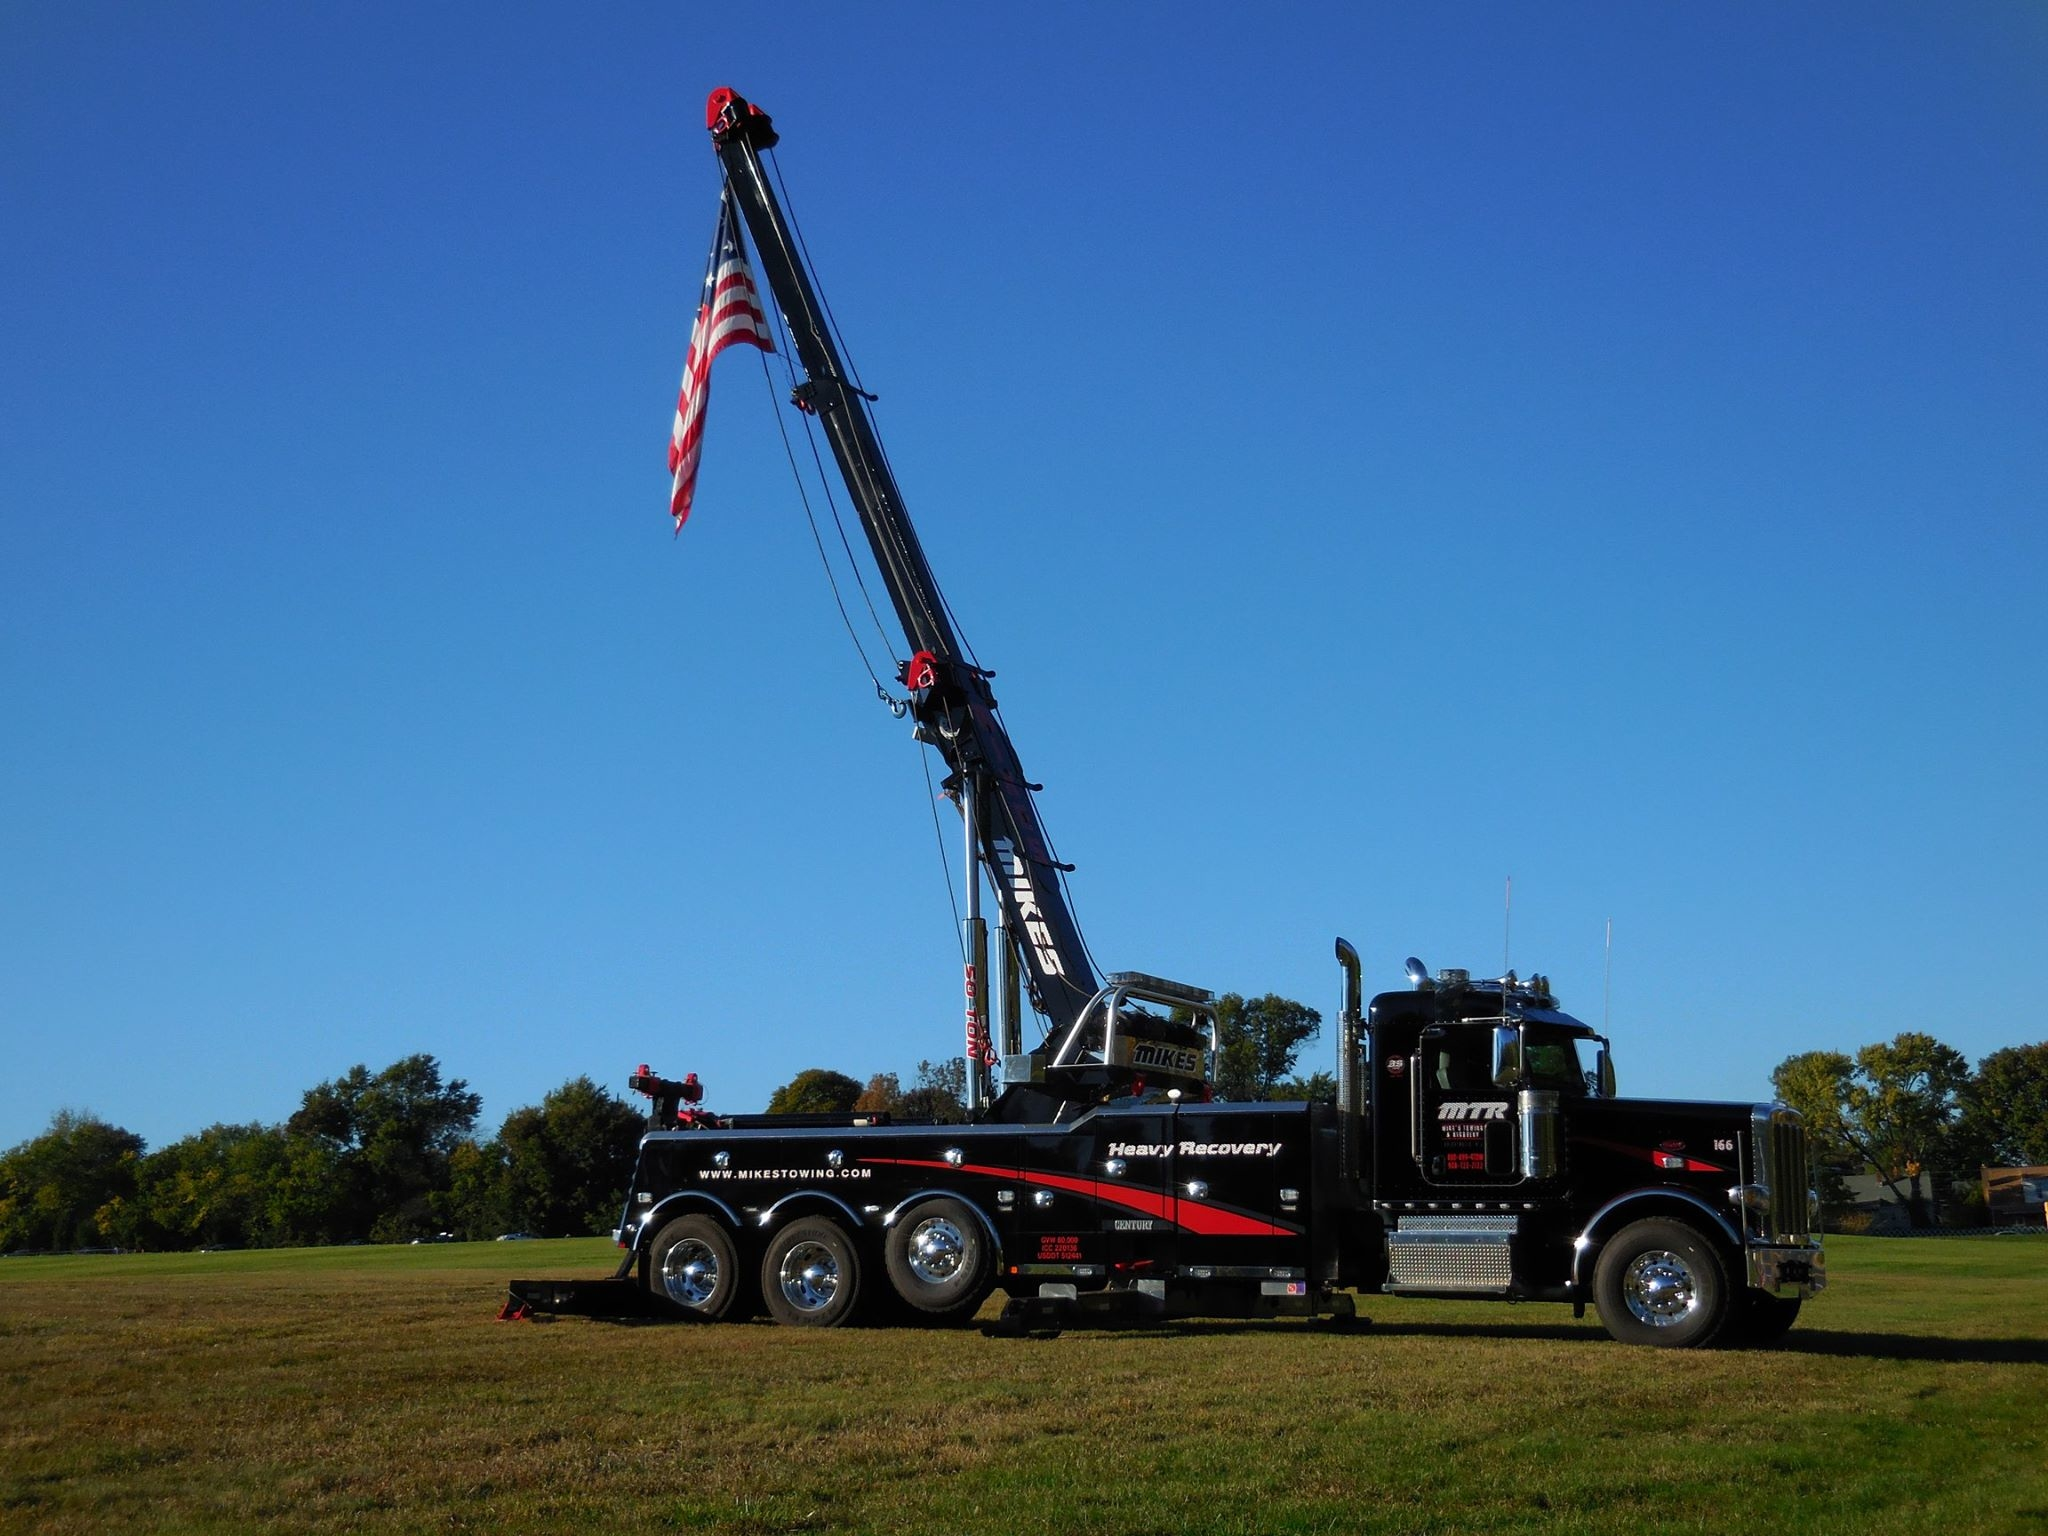 Mike's Towing & Recovery image 32